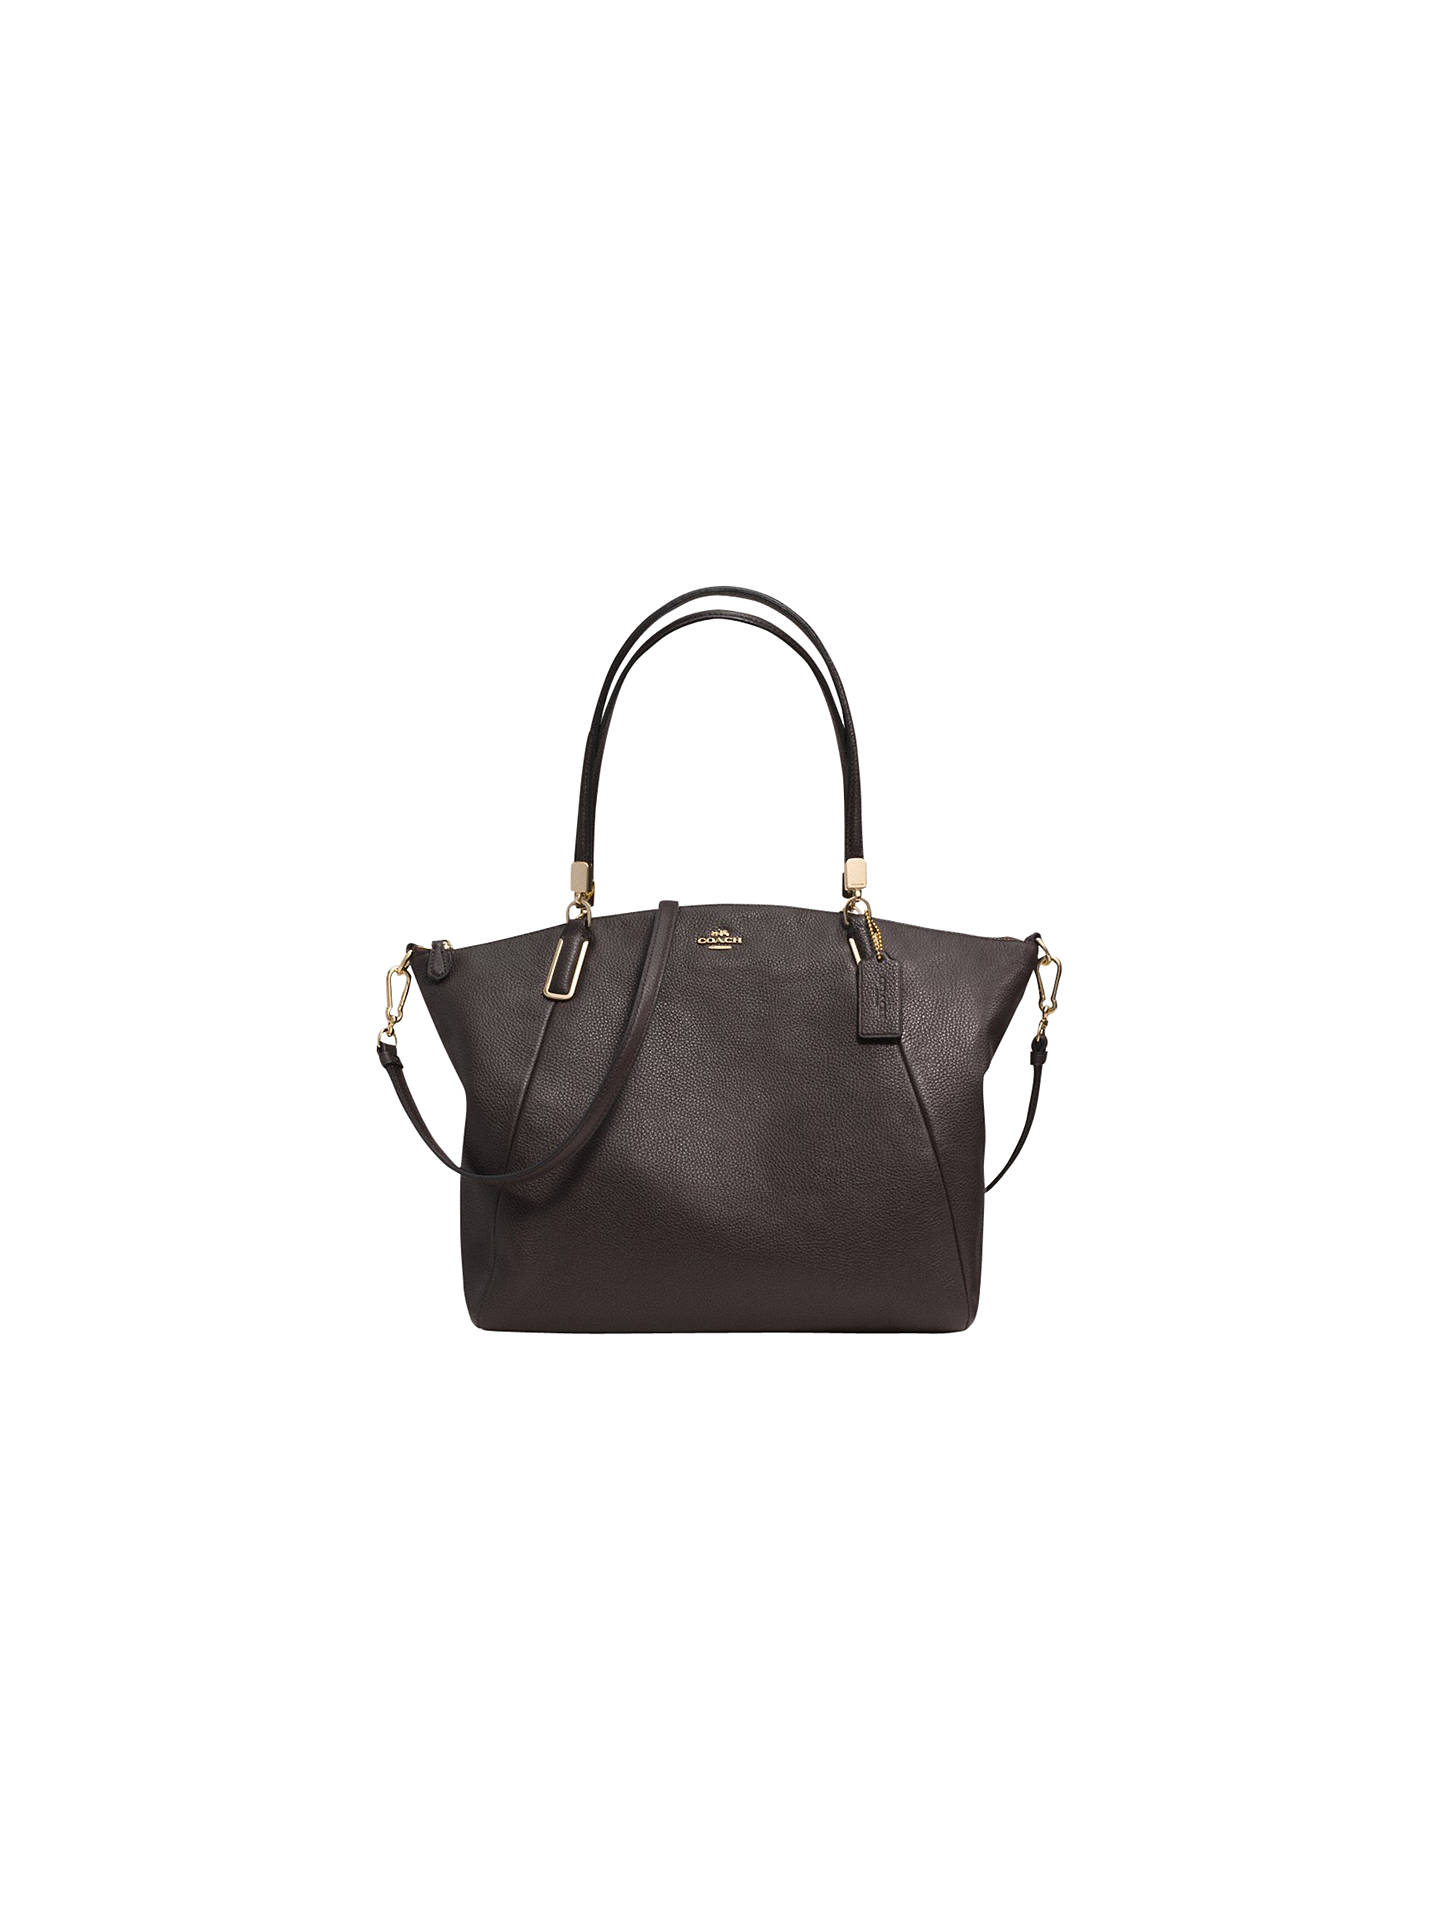 Coach Kelsey Leather Satchel Bag At John Lewis Partners Buycoach Brown Online